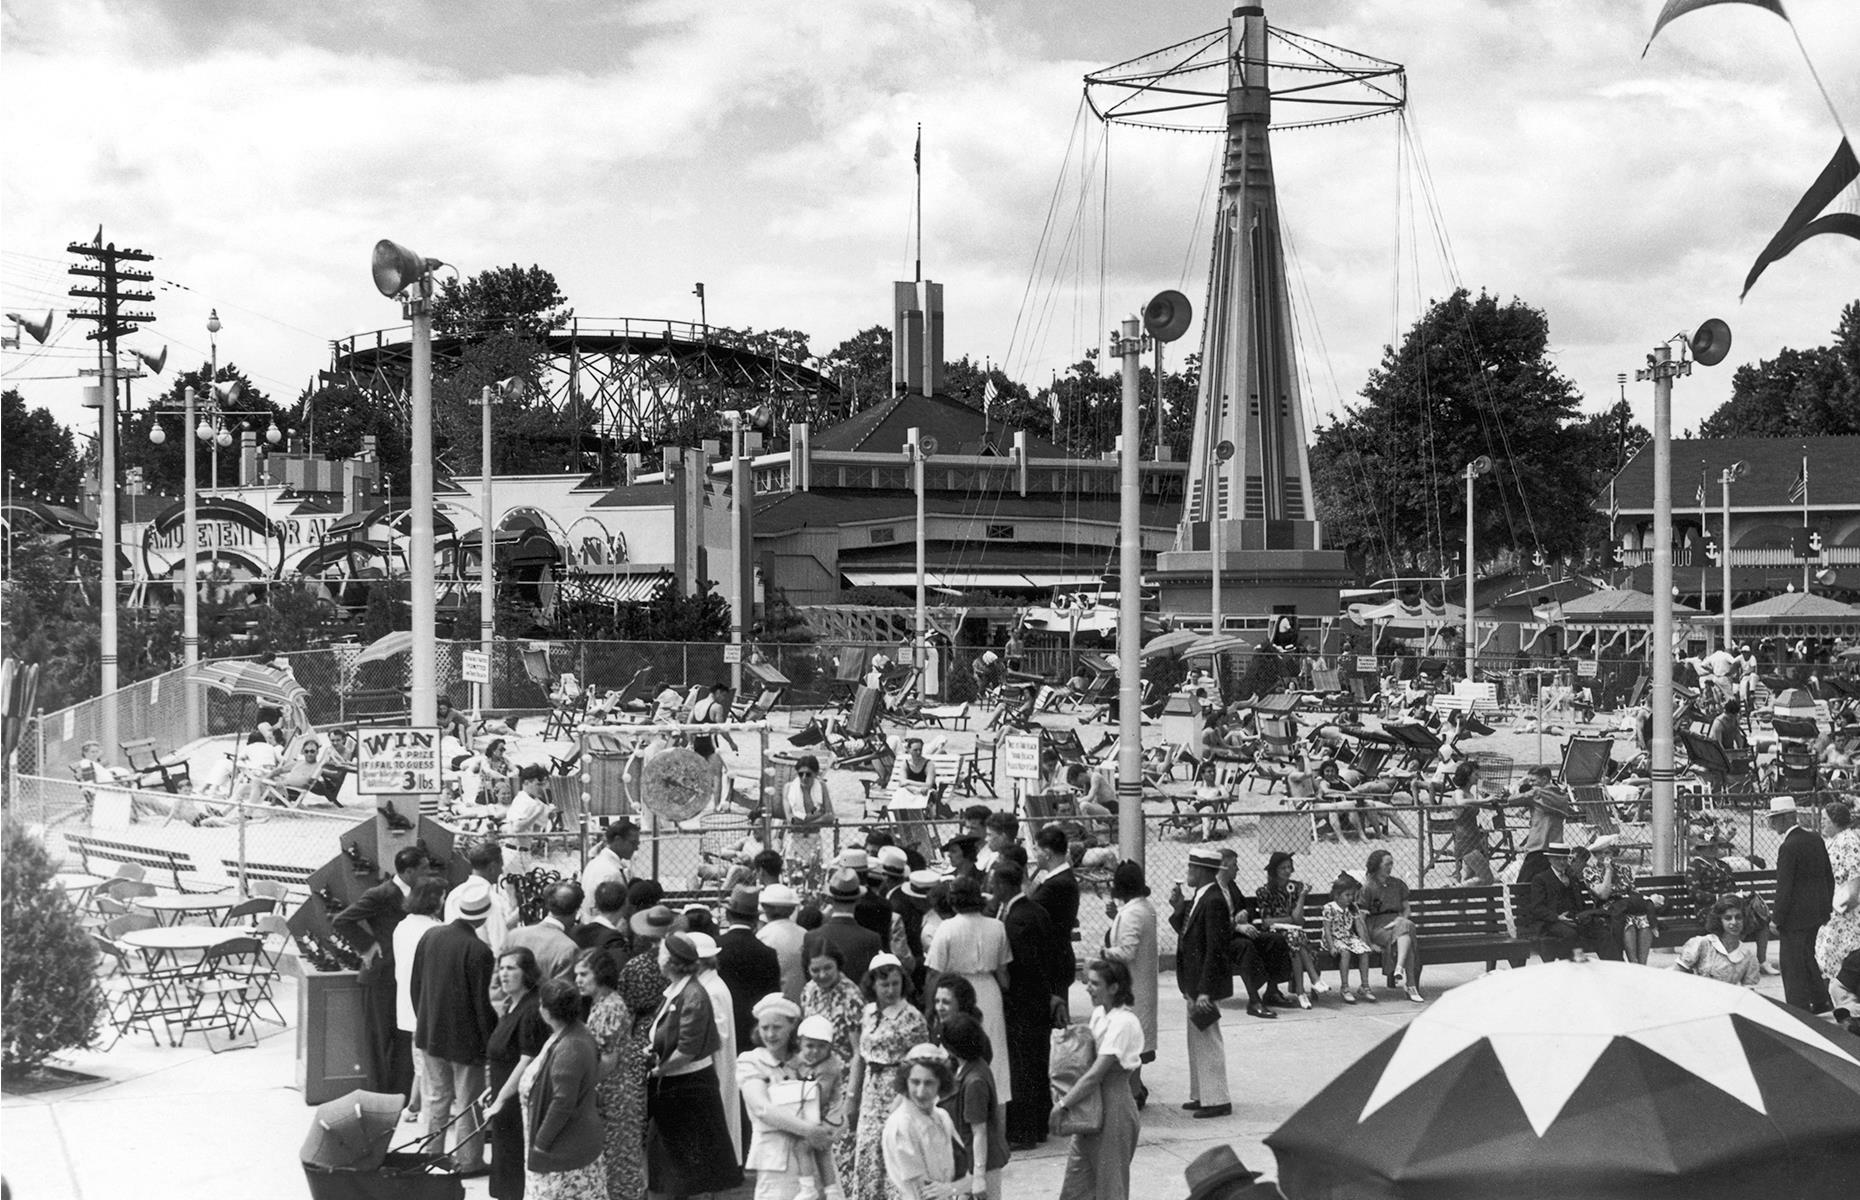 Slide 20 of 31: A stretch of sand and plenty of rides and roller coasters pulled visitors in to Palisades, a kitsch amusement park in New Jersey. It operated from the late 1890s right up until the 1970s. This nostalgic snap shows pleasure seekers milling about beneath the rides and on the little beach circa 1947. Check out more historic photos of theme parks in their heyday.